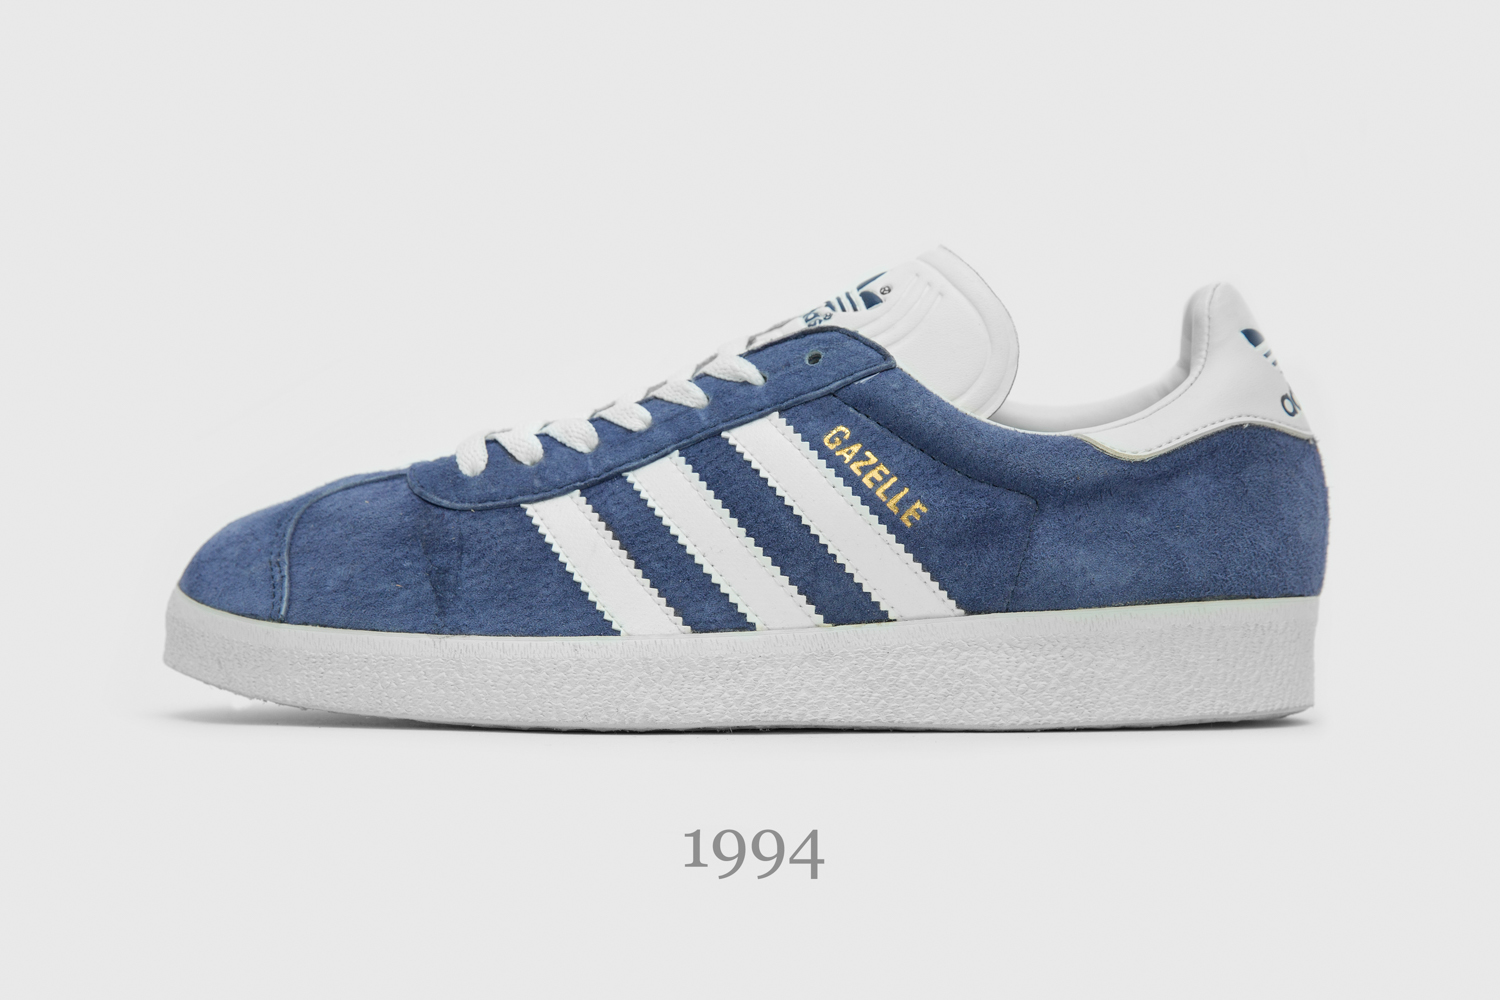 size_HQ_Lockup_adidas_originals_gazelle-4